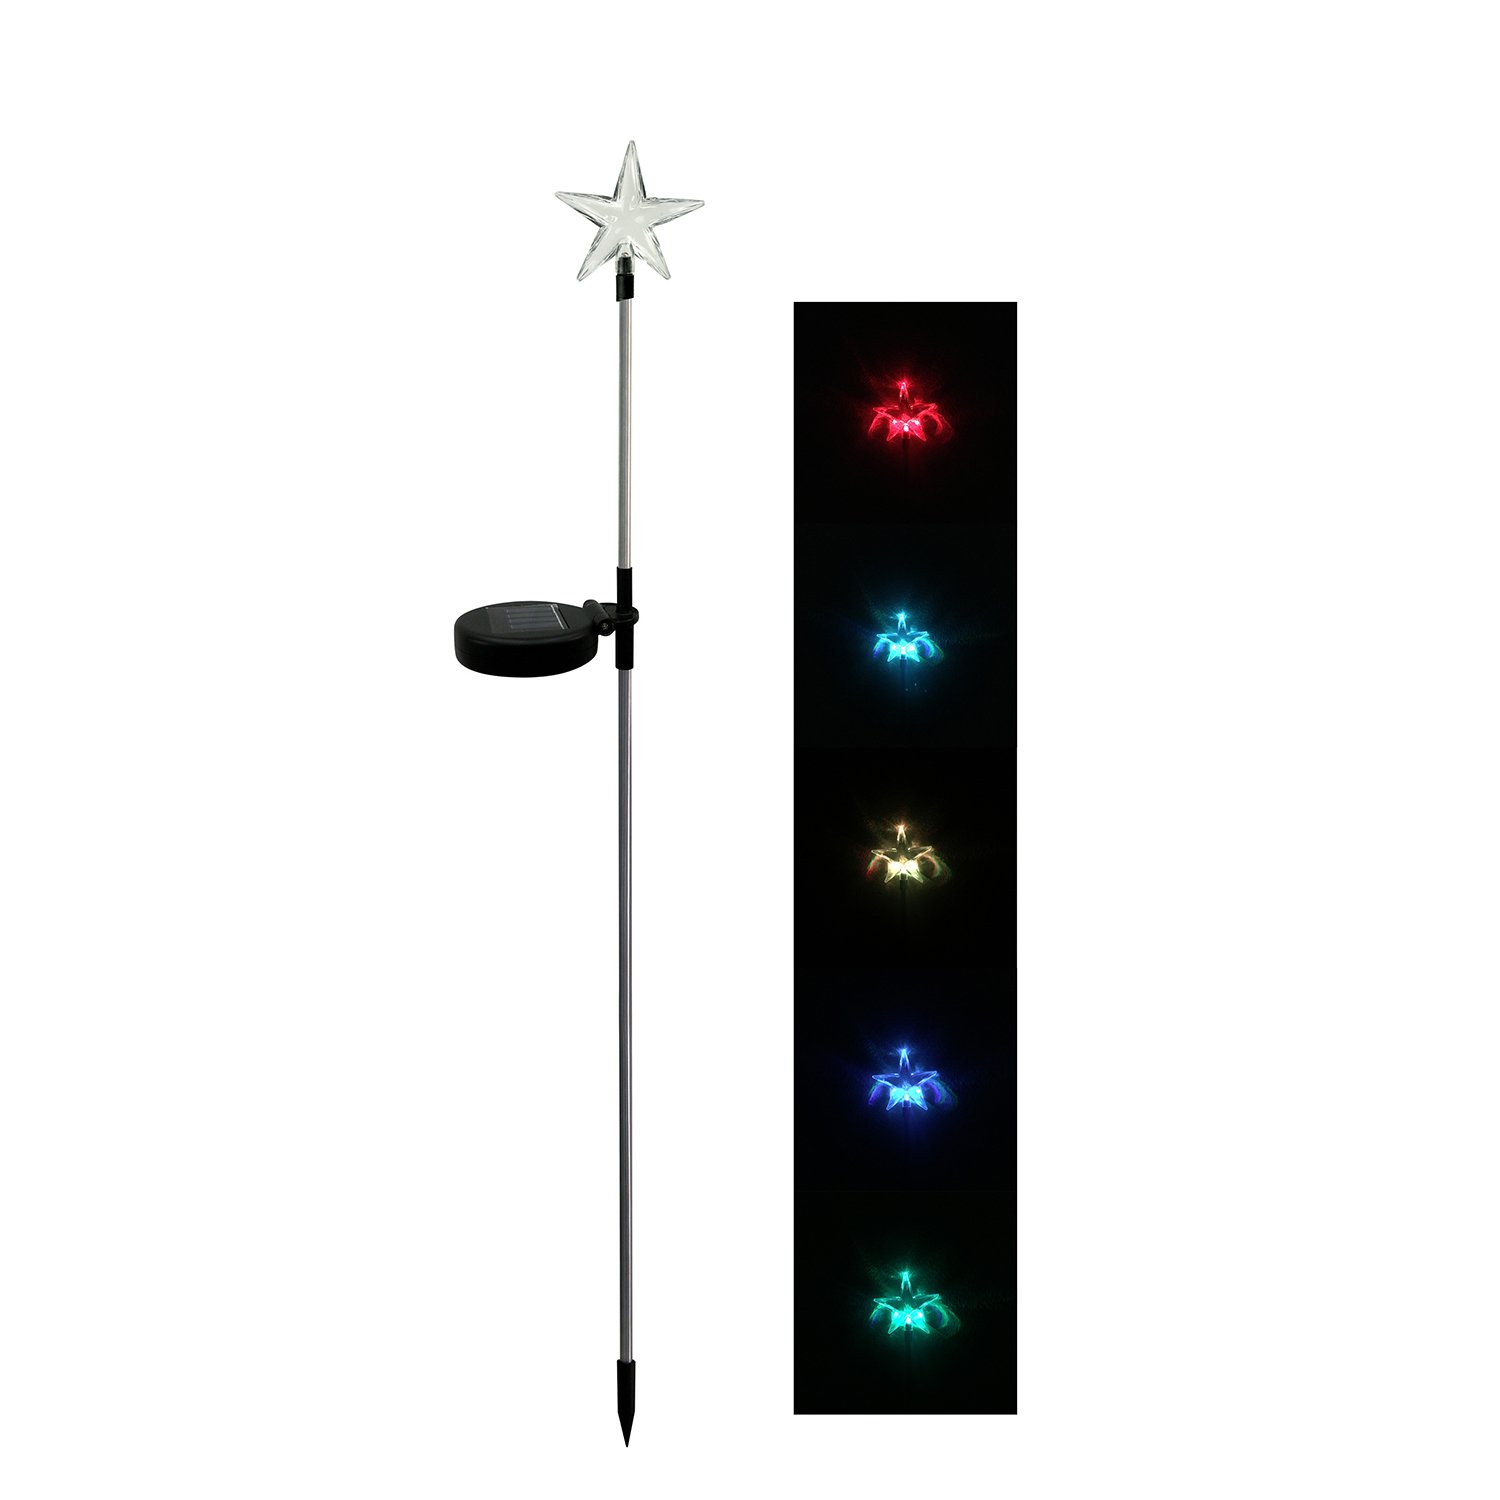 Celestial Star Solar Light Garden Stakes LED Multi-Color Changing Path Light Outdoor Decorative Figurines, Pack of 2